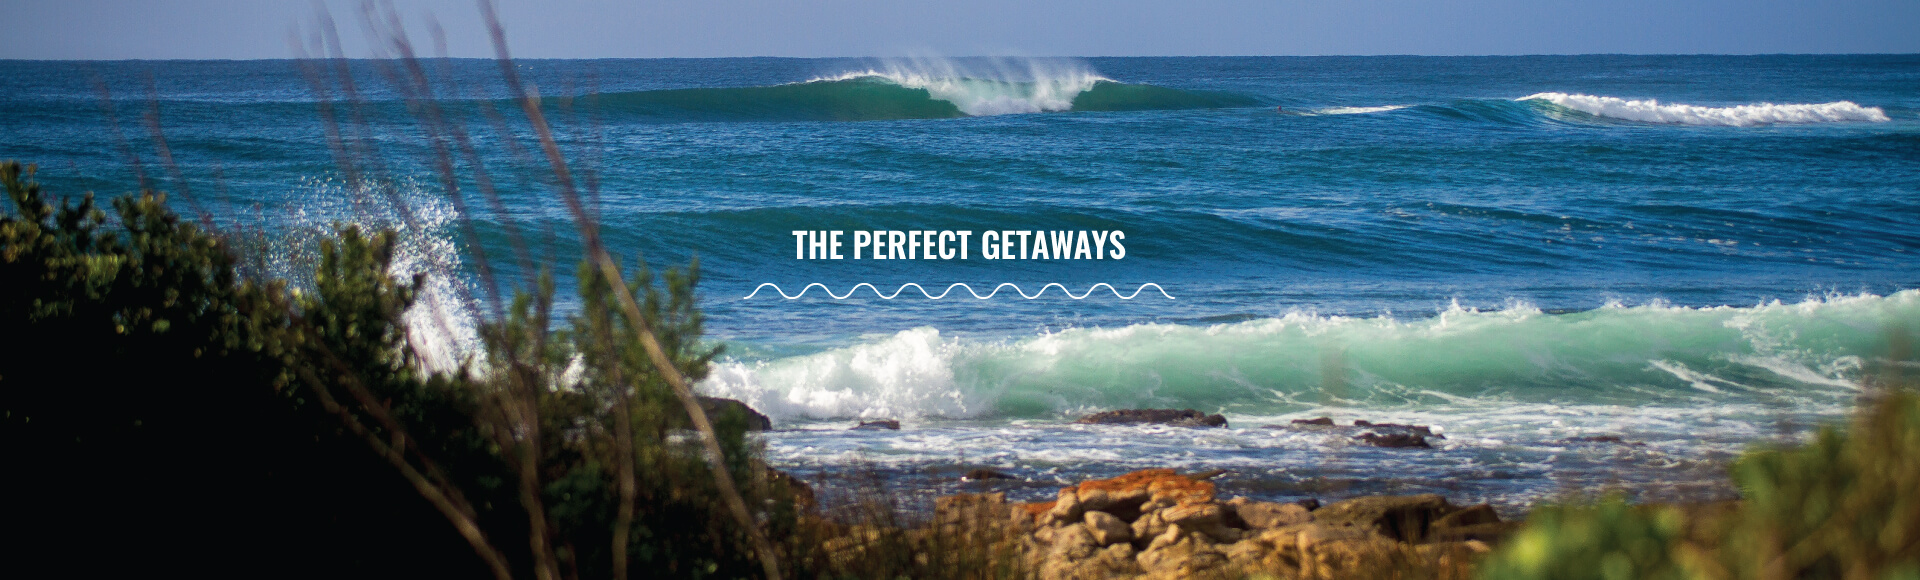 Casa Surf Lodge - The Perfect Getaways